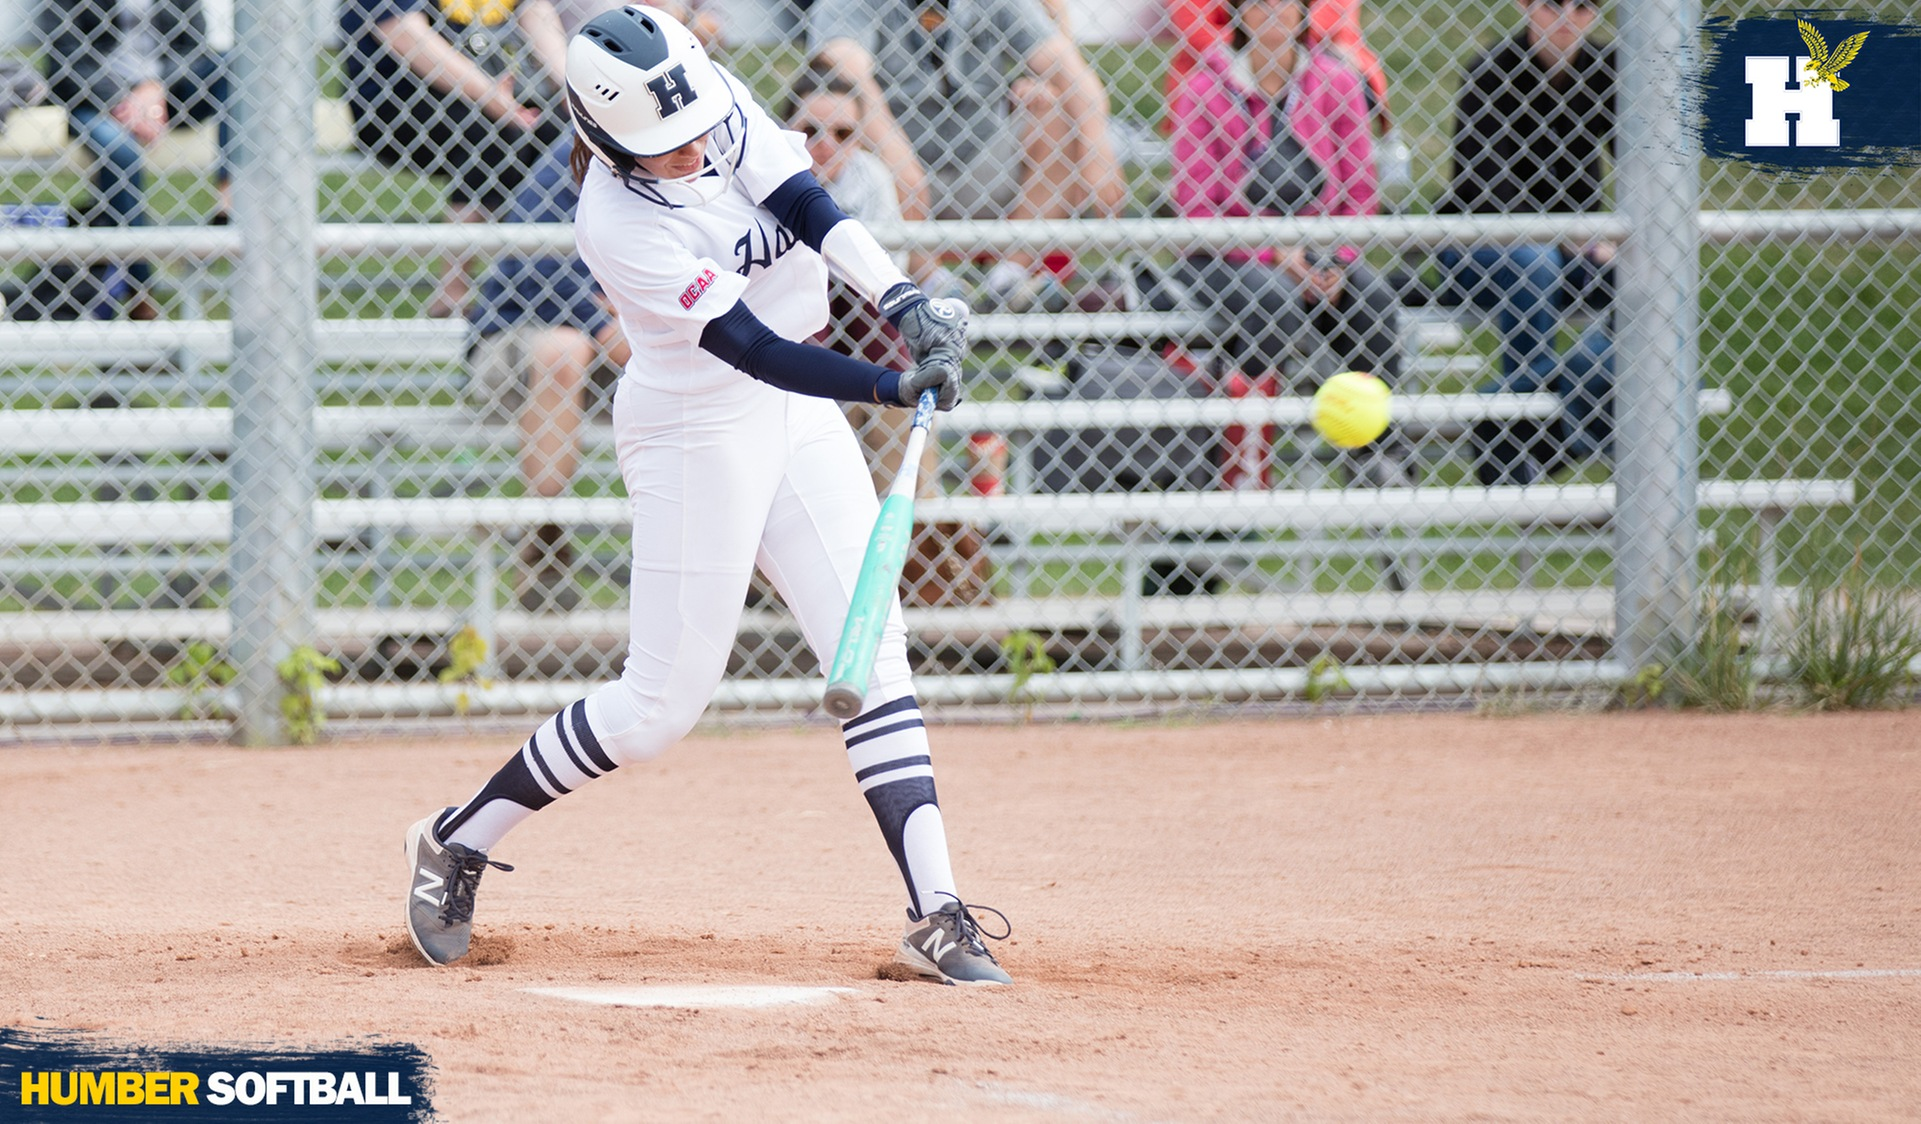 SOFTBALL FALLS TO DURHAM ON THE ROAD